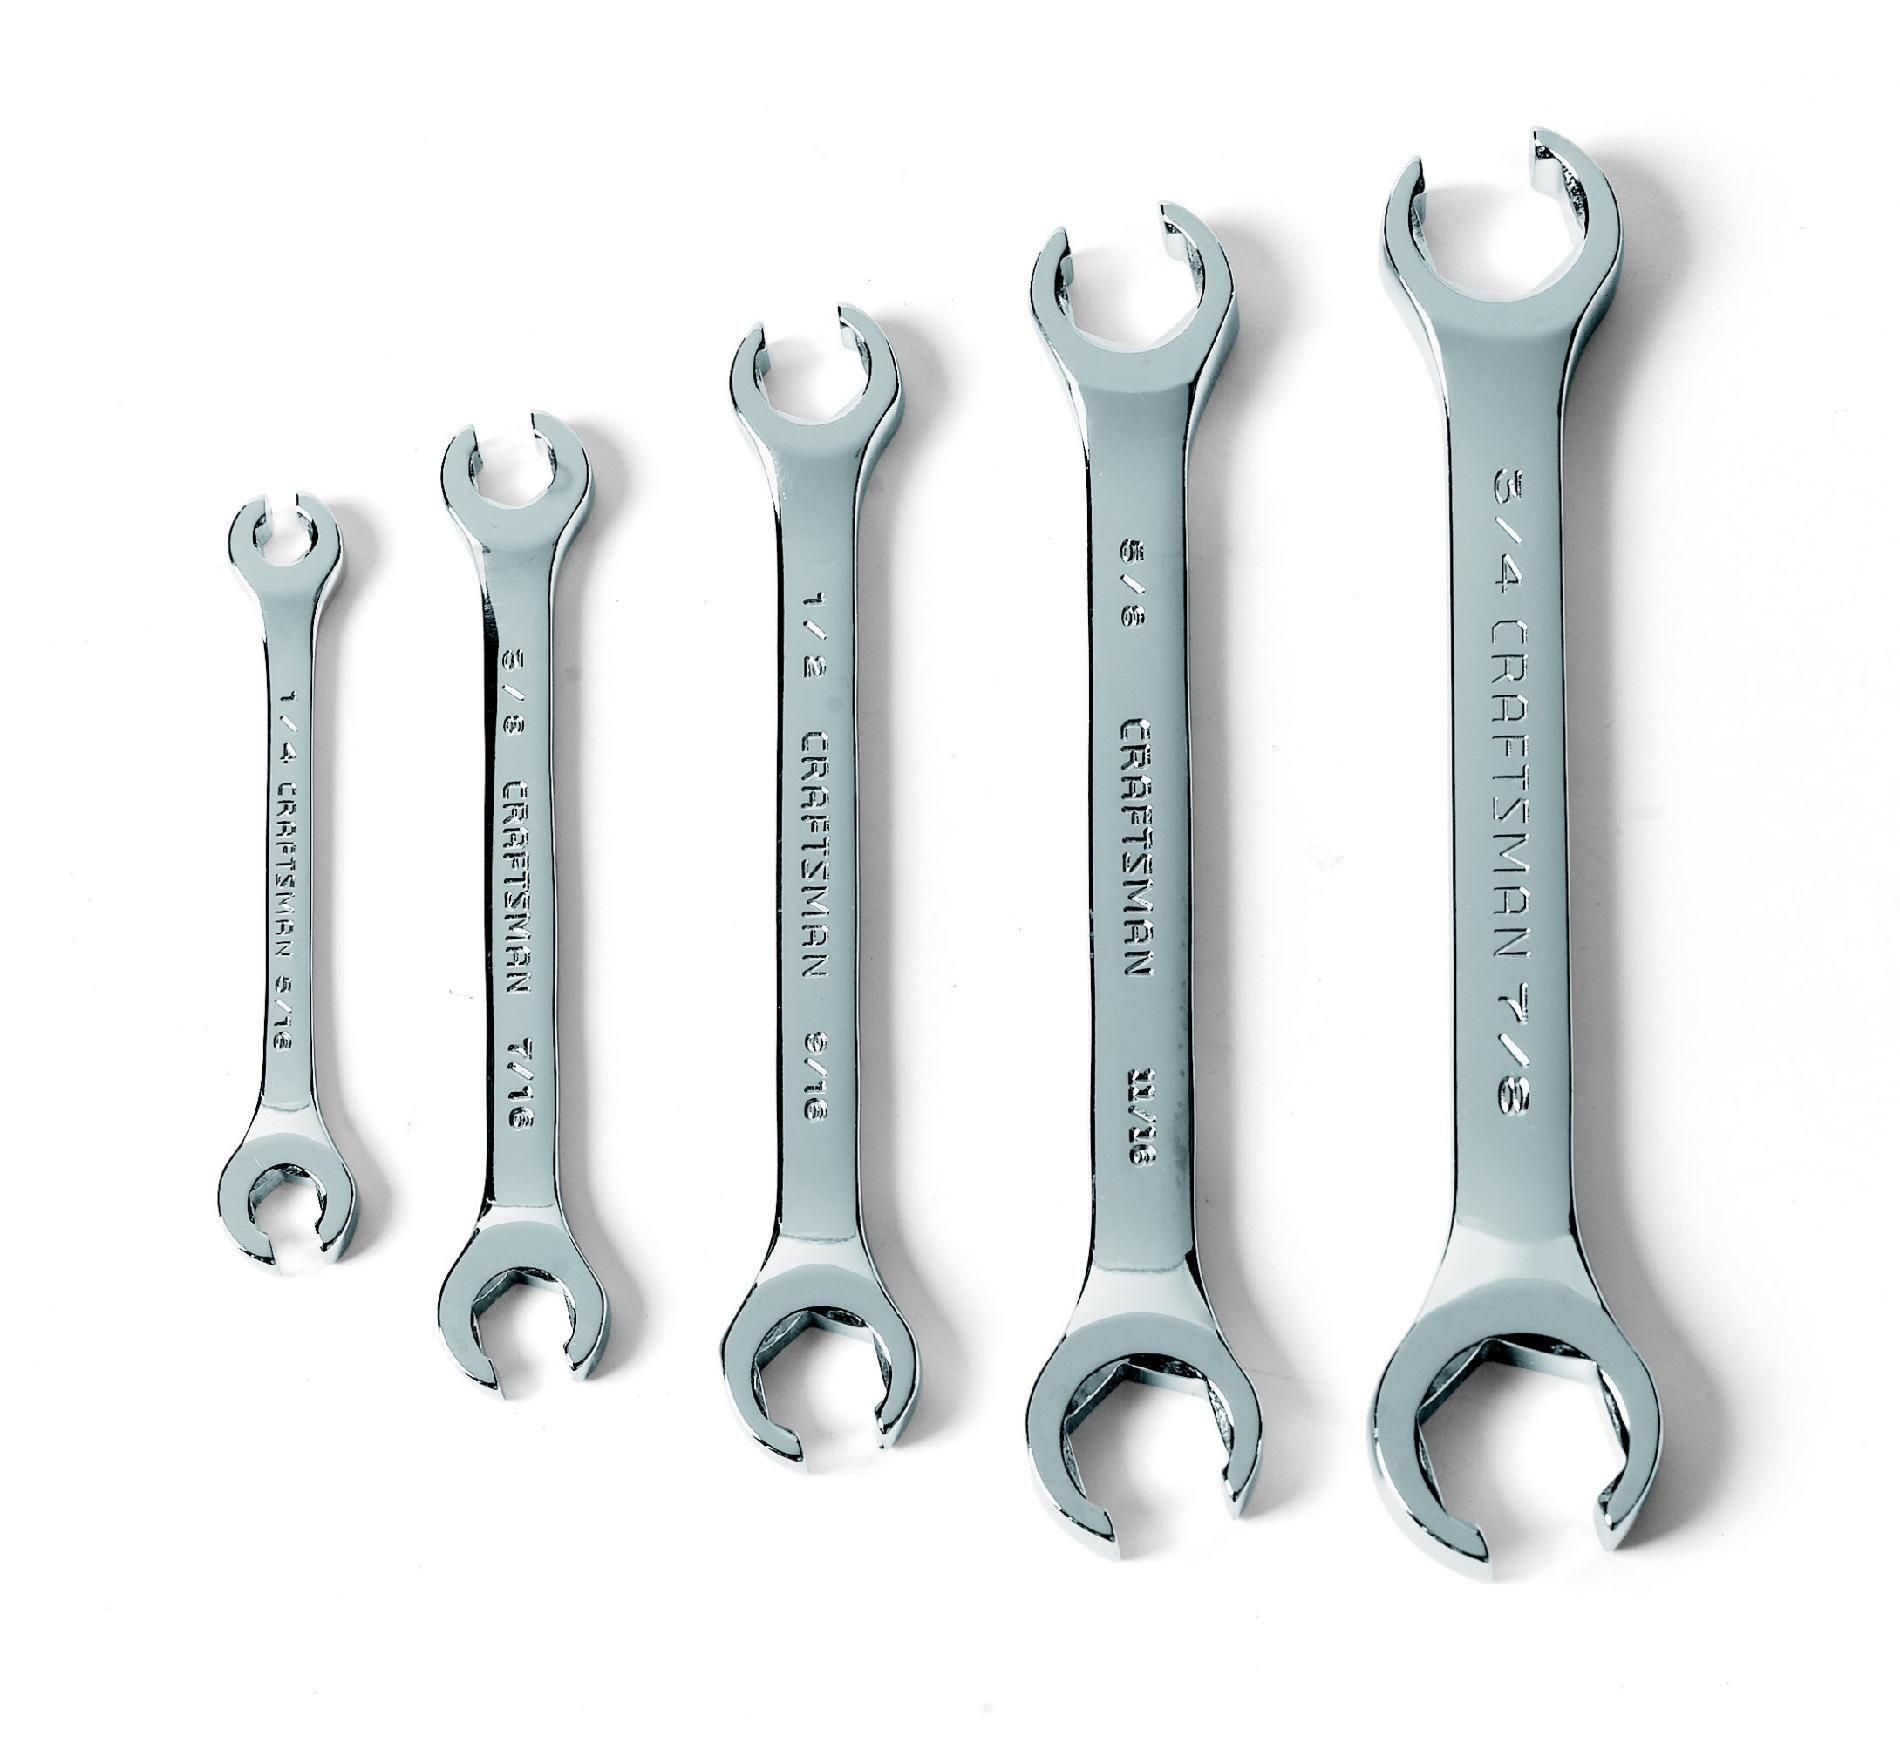 Craftsman 5 pc. Flare Nut Wrench Set Standard SAE